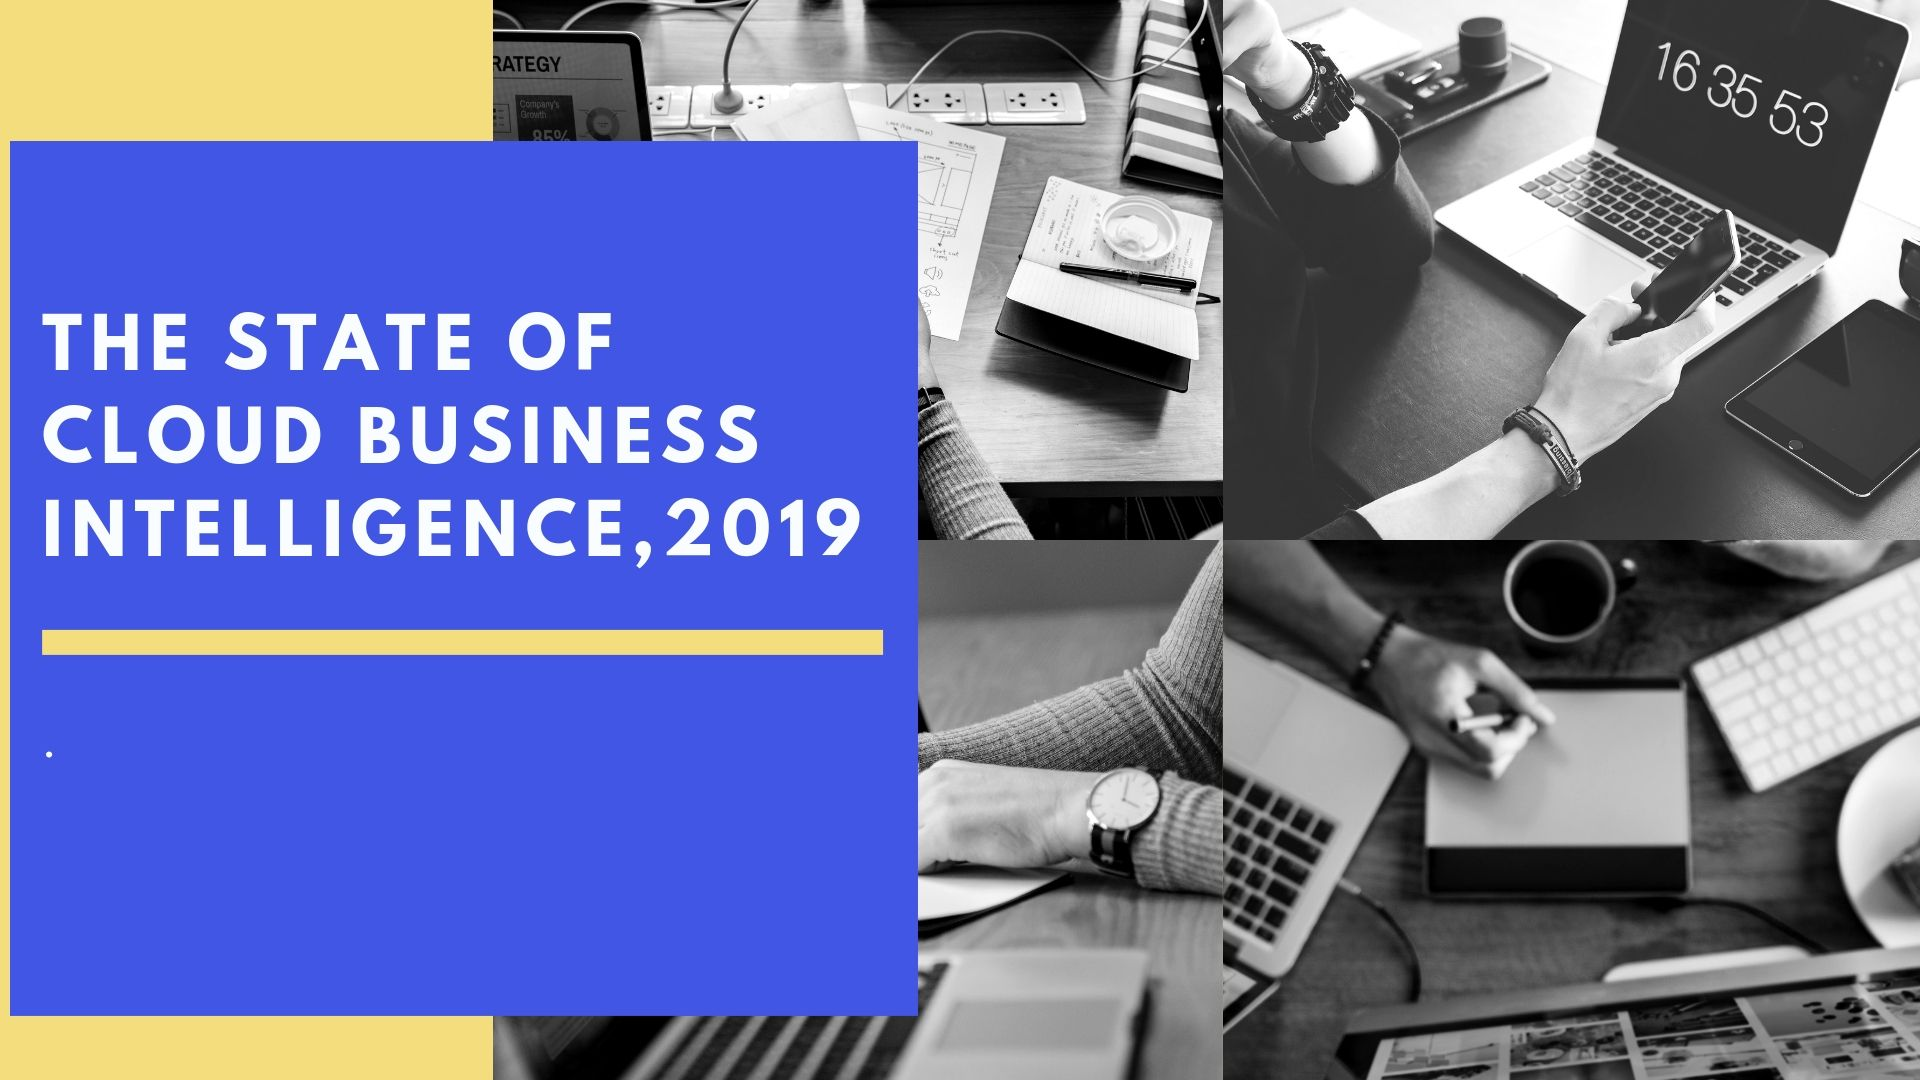 The State Of Cloud Business Intelligence, 2019